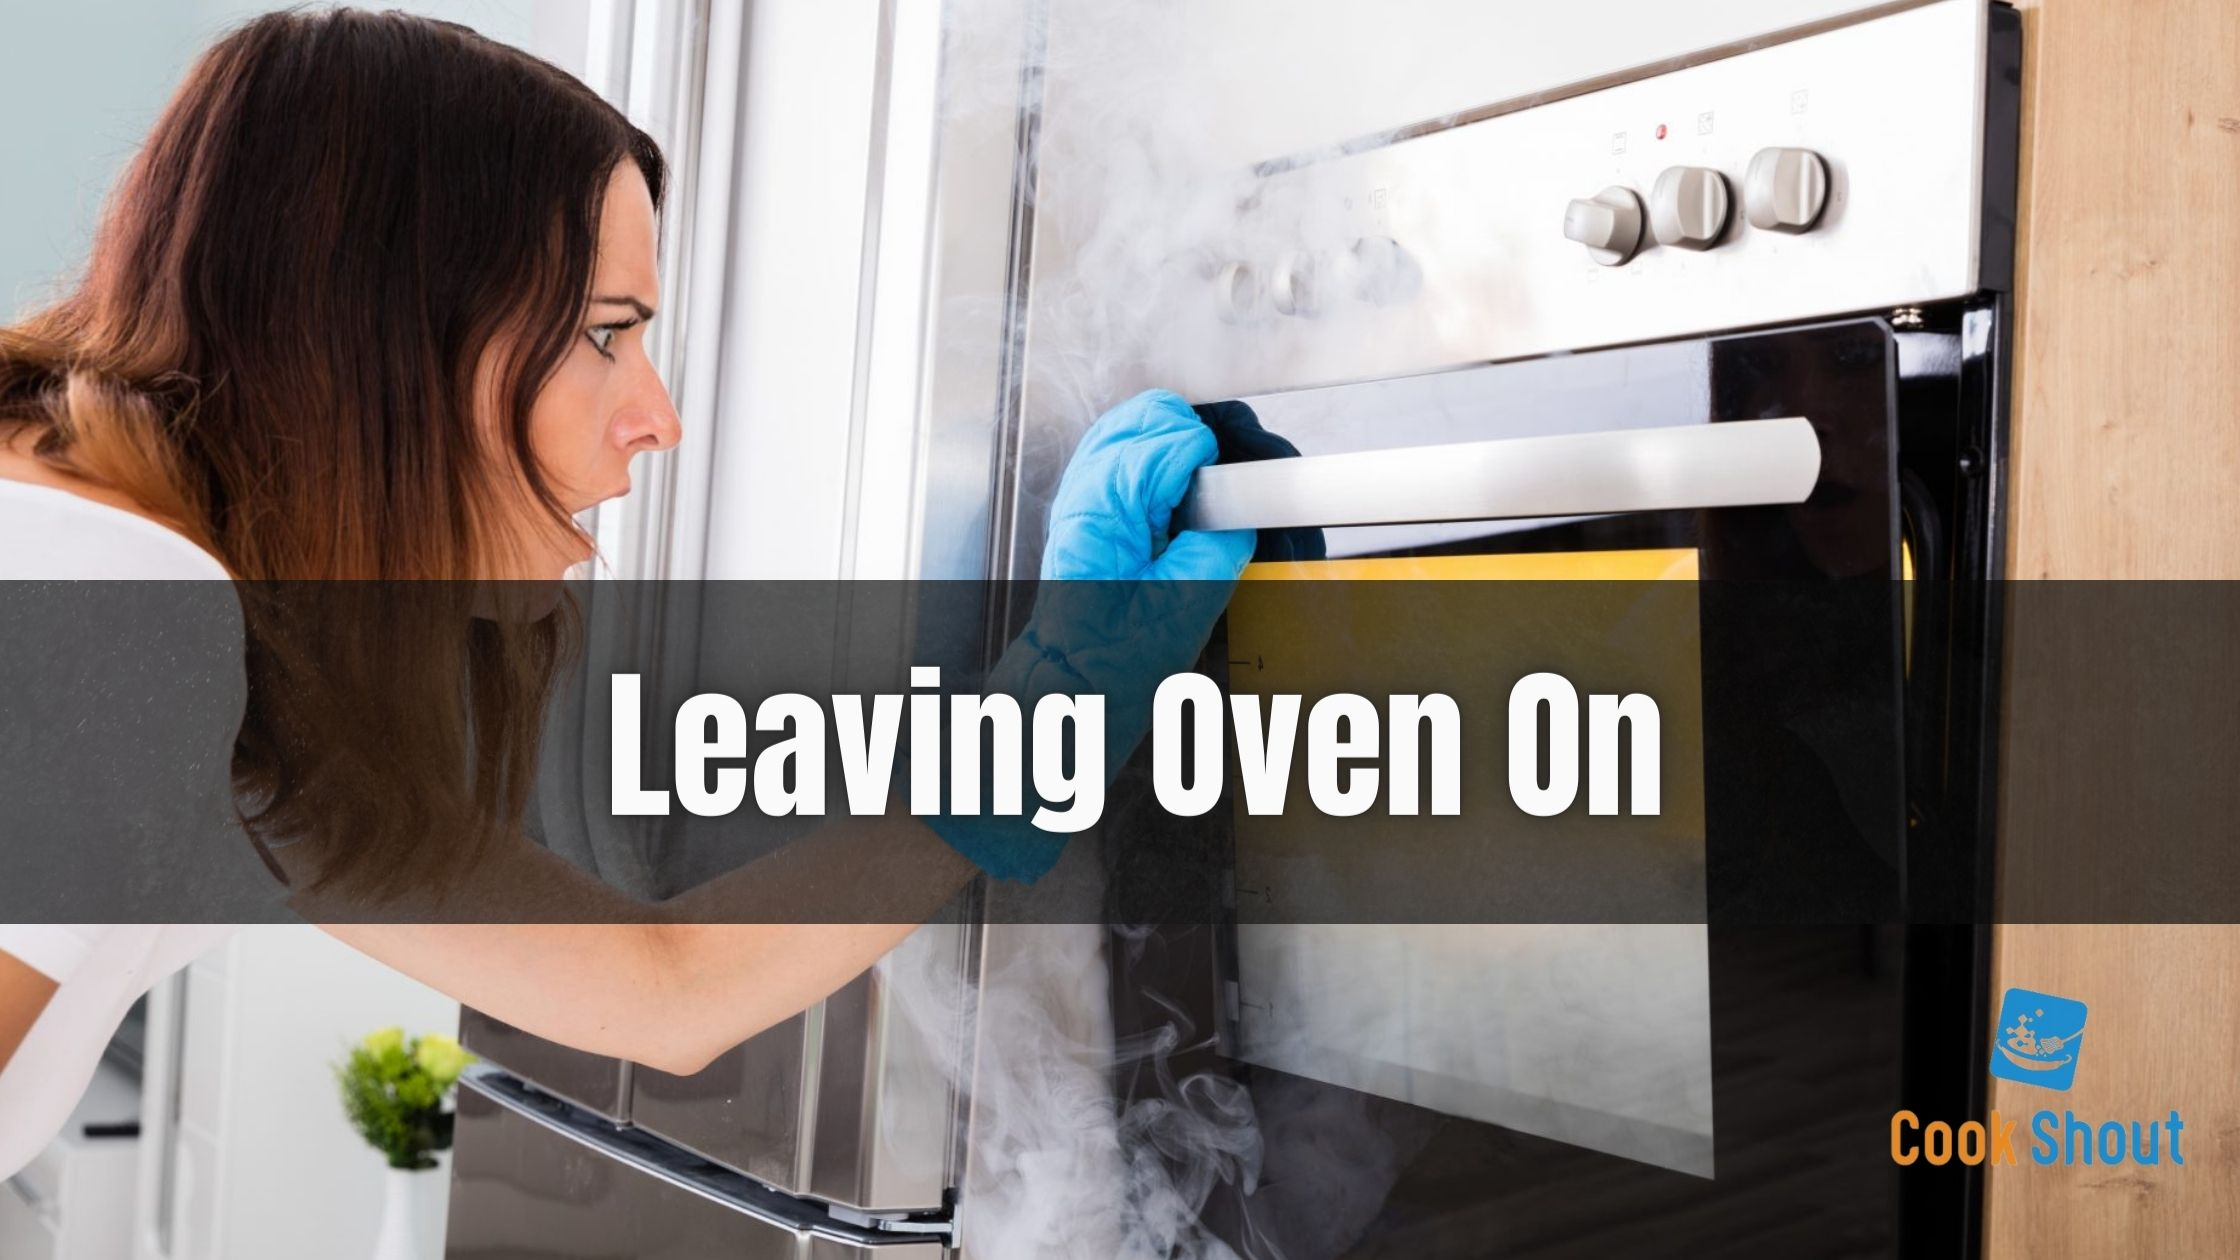 Leaving Oven On